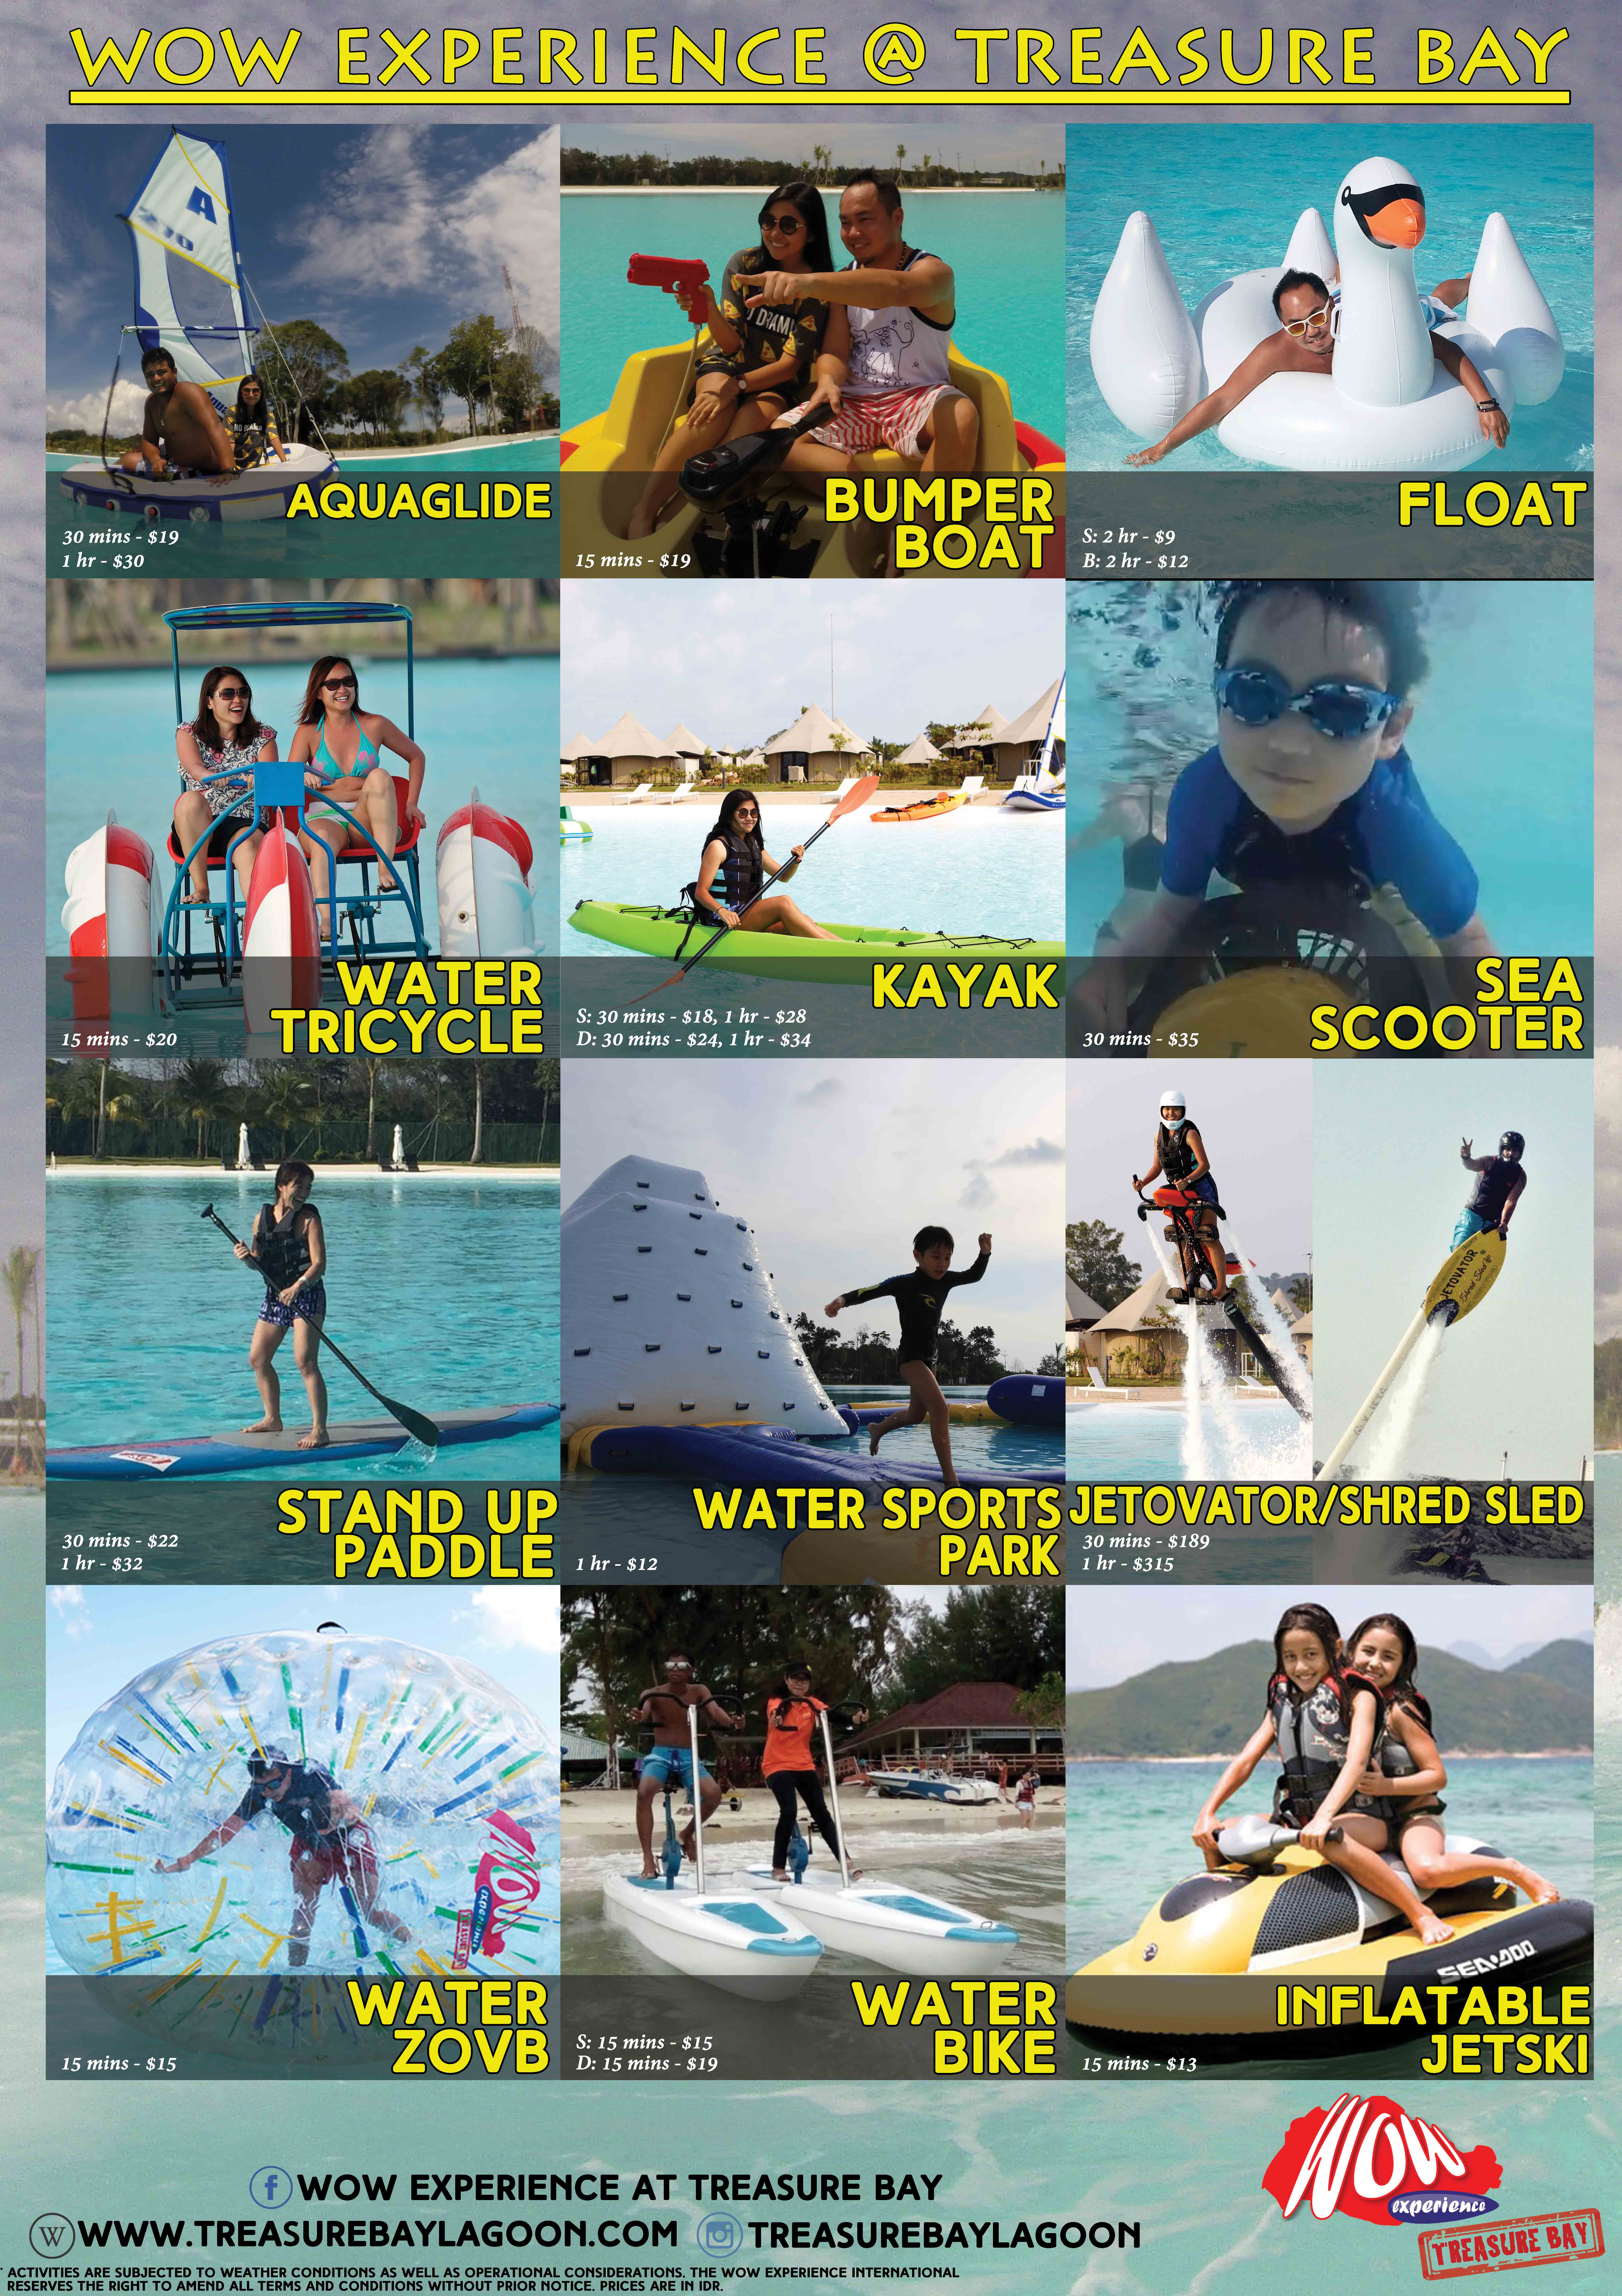 Activities Rates in Crystal Lagoon   The WOW Experience at Treasure